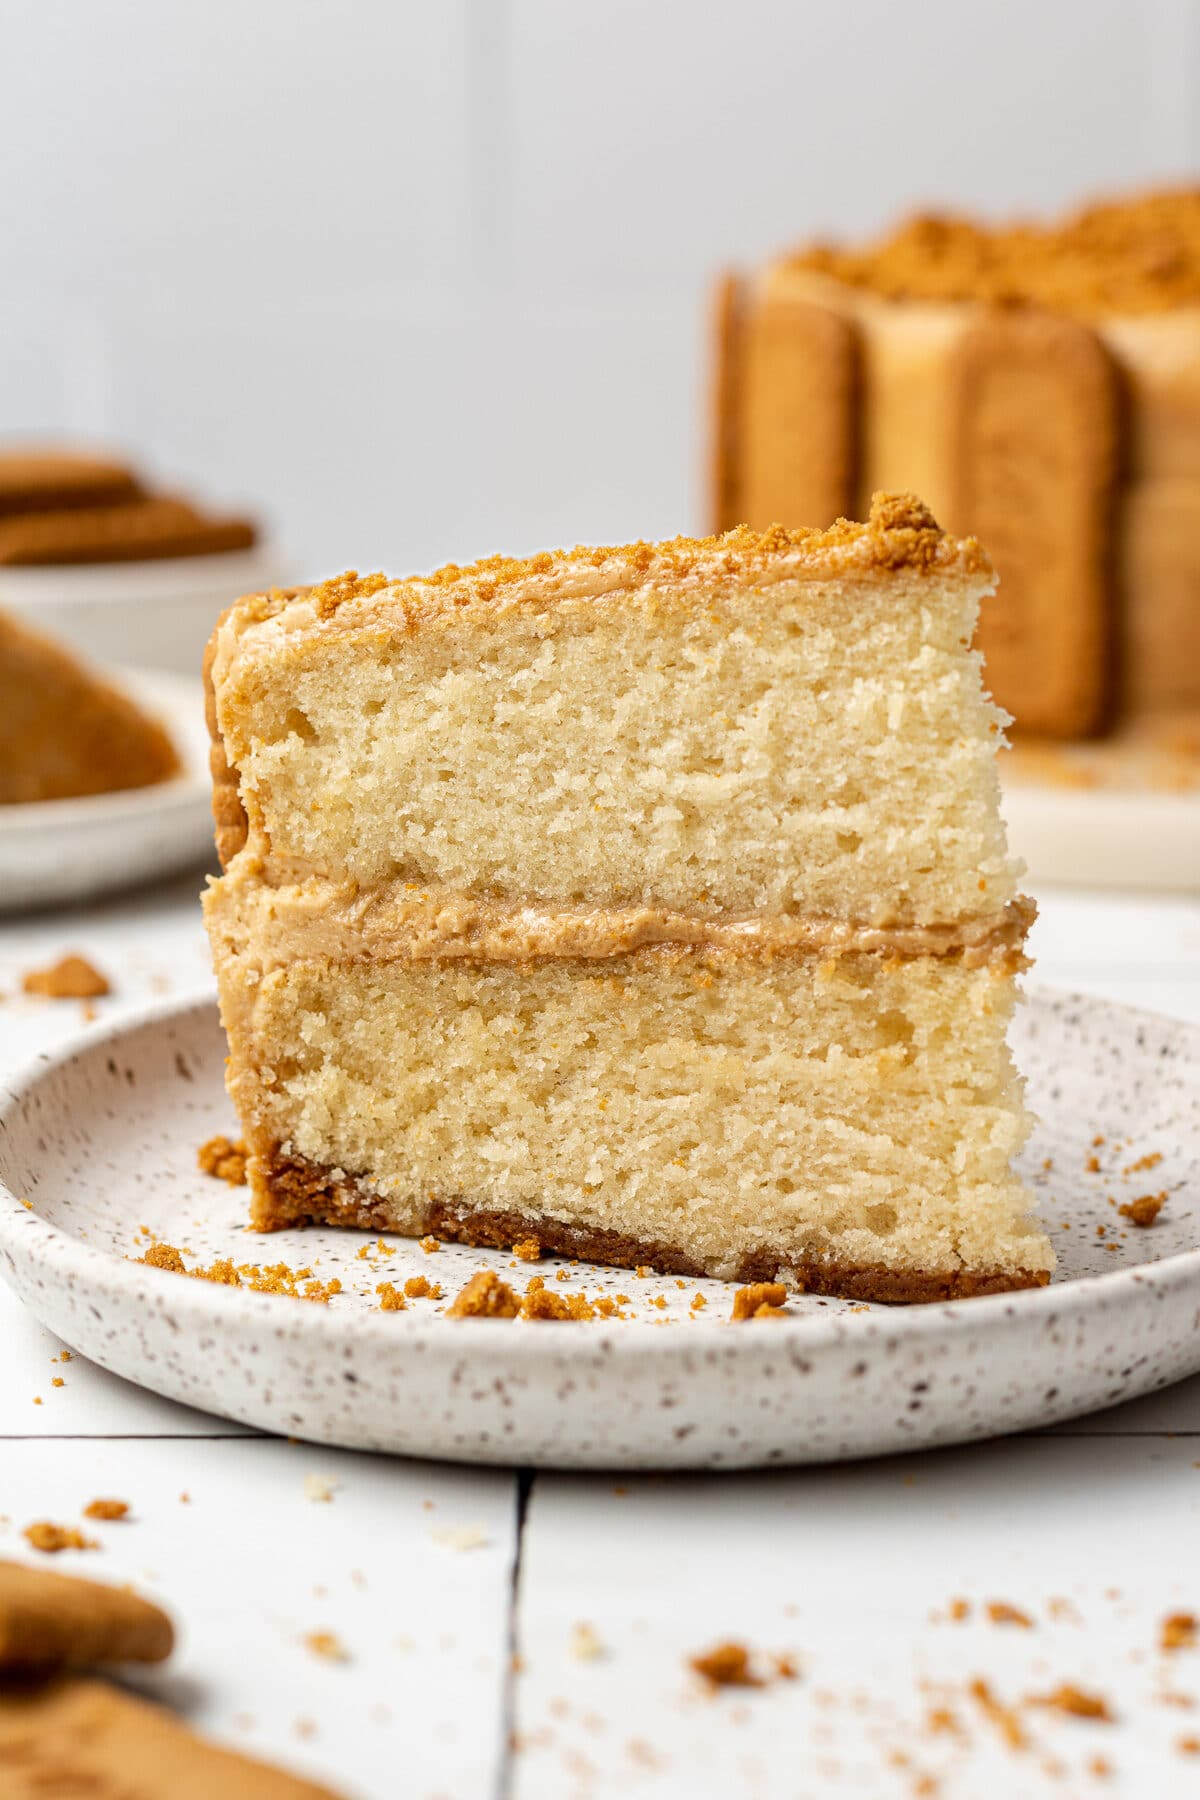 a slice of biscoff cake on a plate with more cake in the background